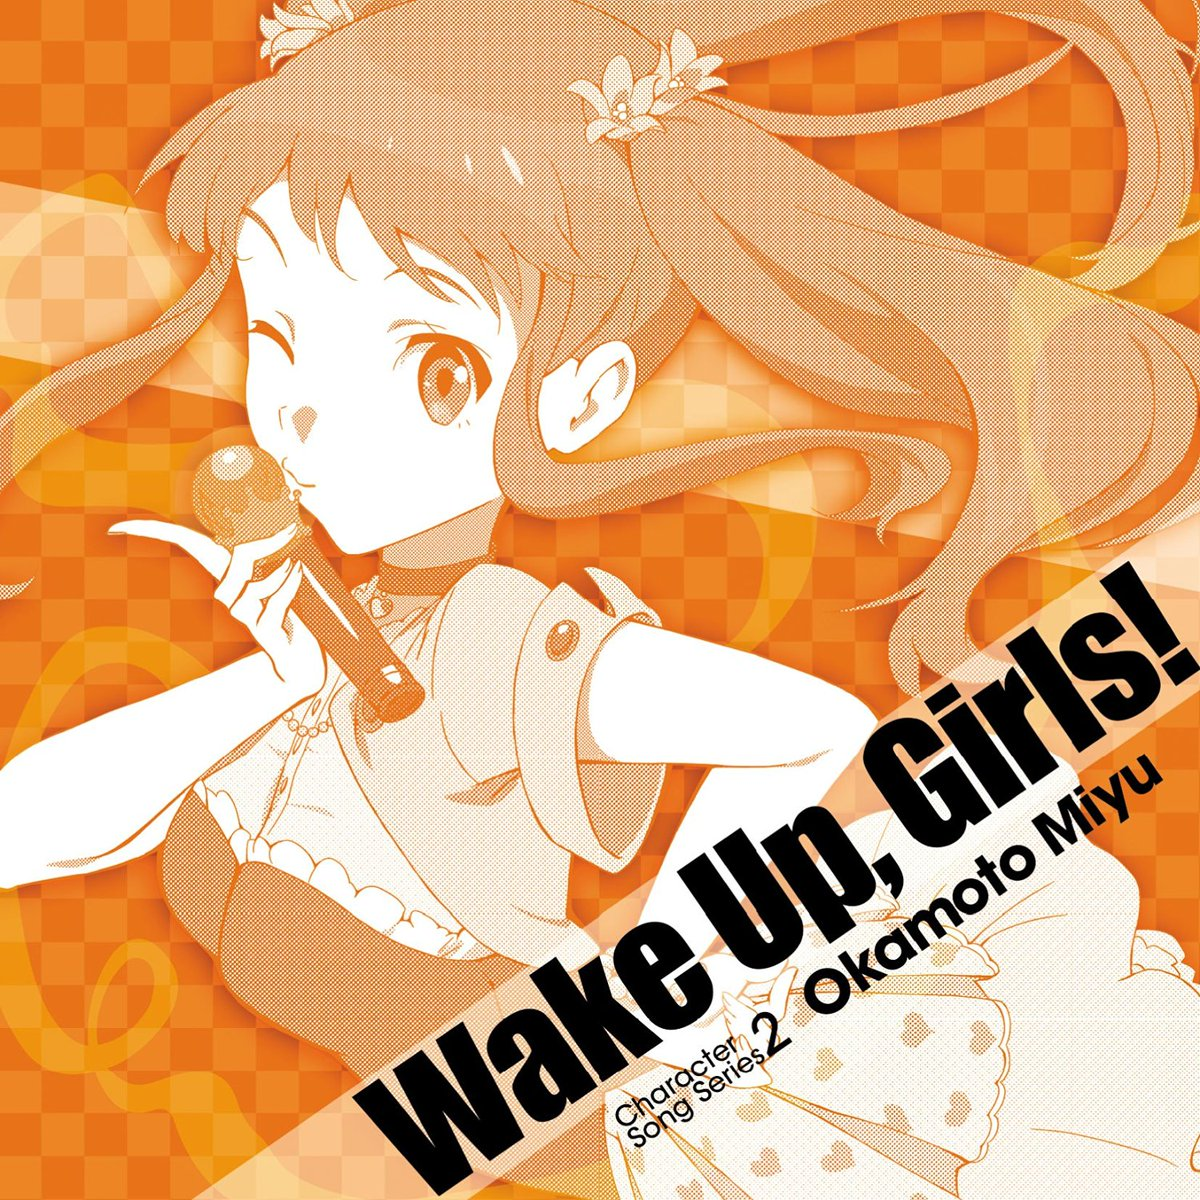 #yusakuplaying It's amazing show time☆ by 岡本未夕 (高木美佑) - Wake